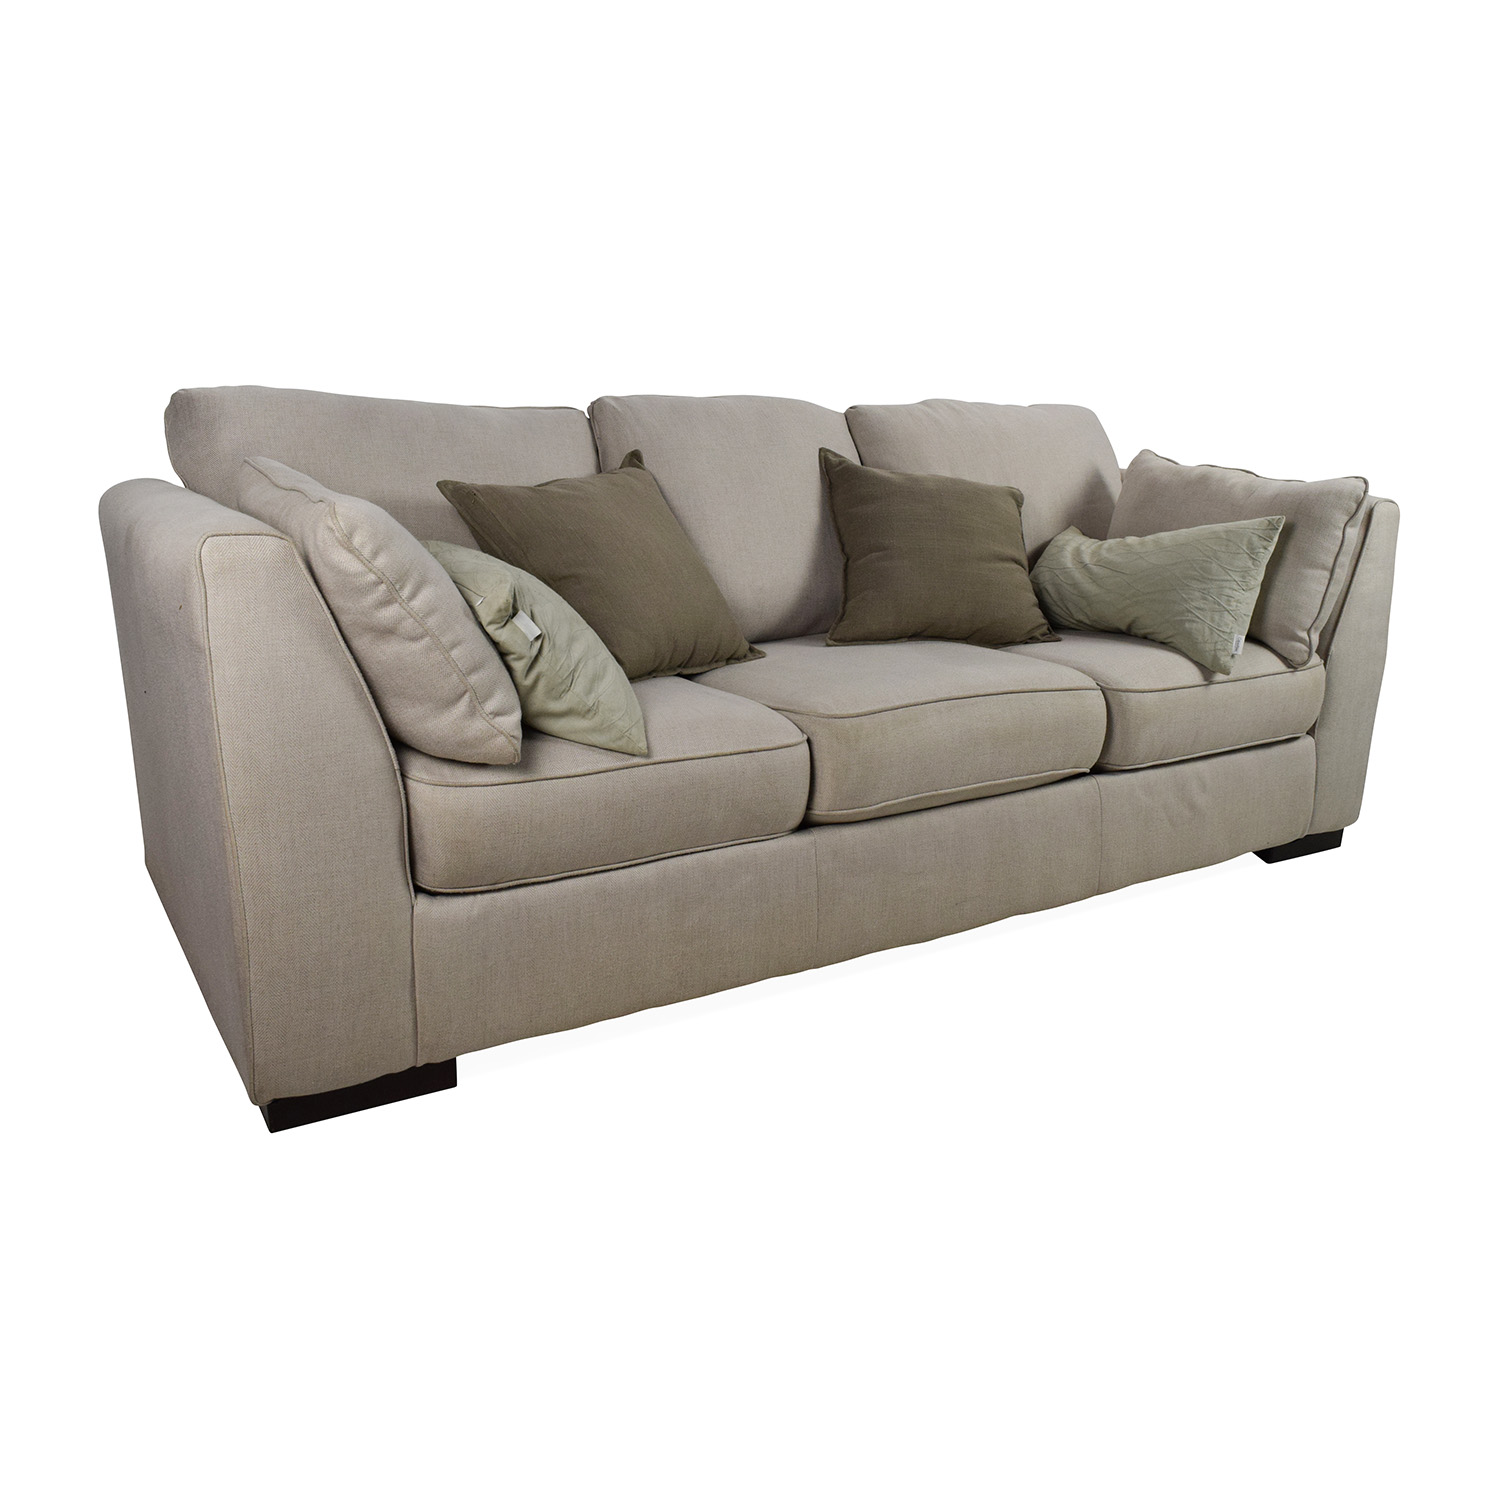 62 off ashley furniture ashley furniture pierin sofa